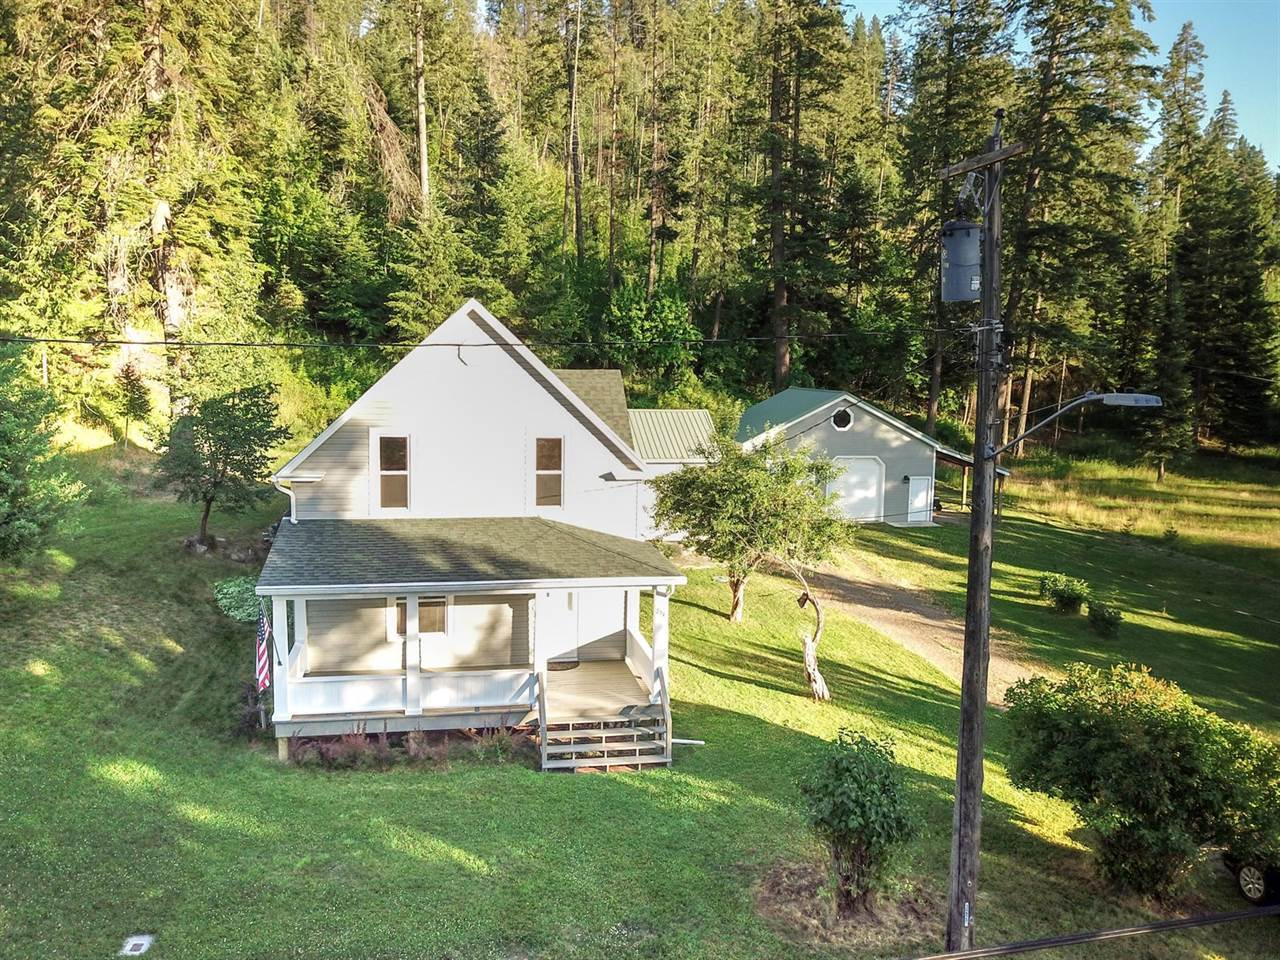 251 Garfield Ave, Harrison, ID 83833